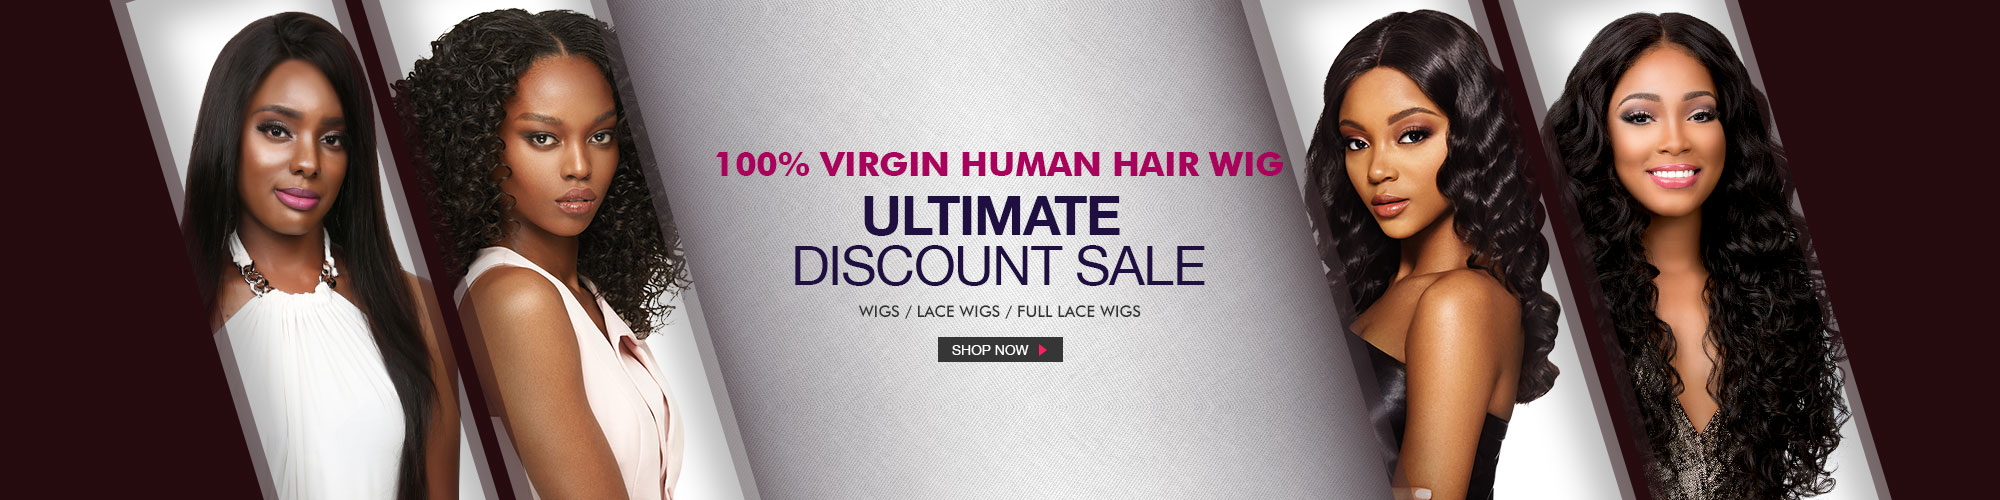 ULTIMATE DISCOUNT SALE! - 100% VIRGIN HUMAN HAIR WIG